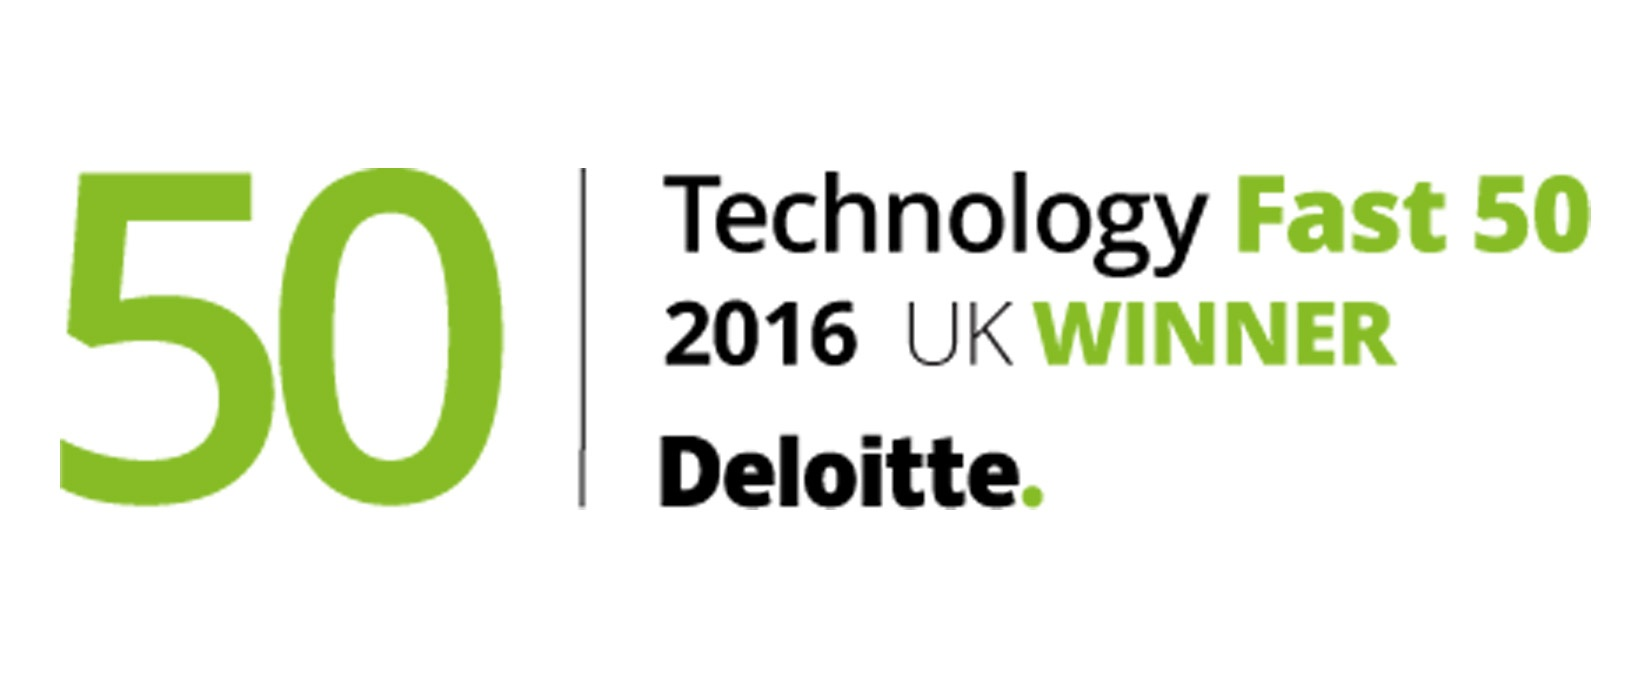 We're one of the UK's fastest growing technology companies… it's official!